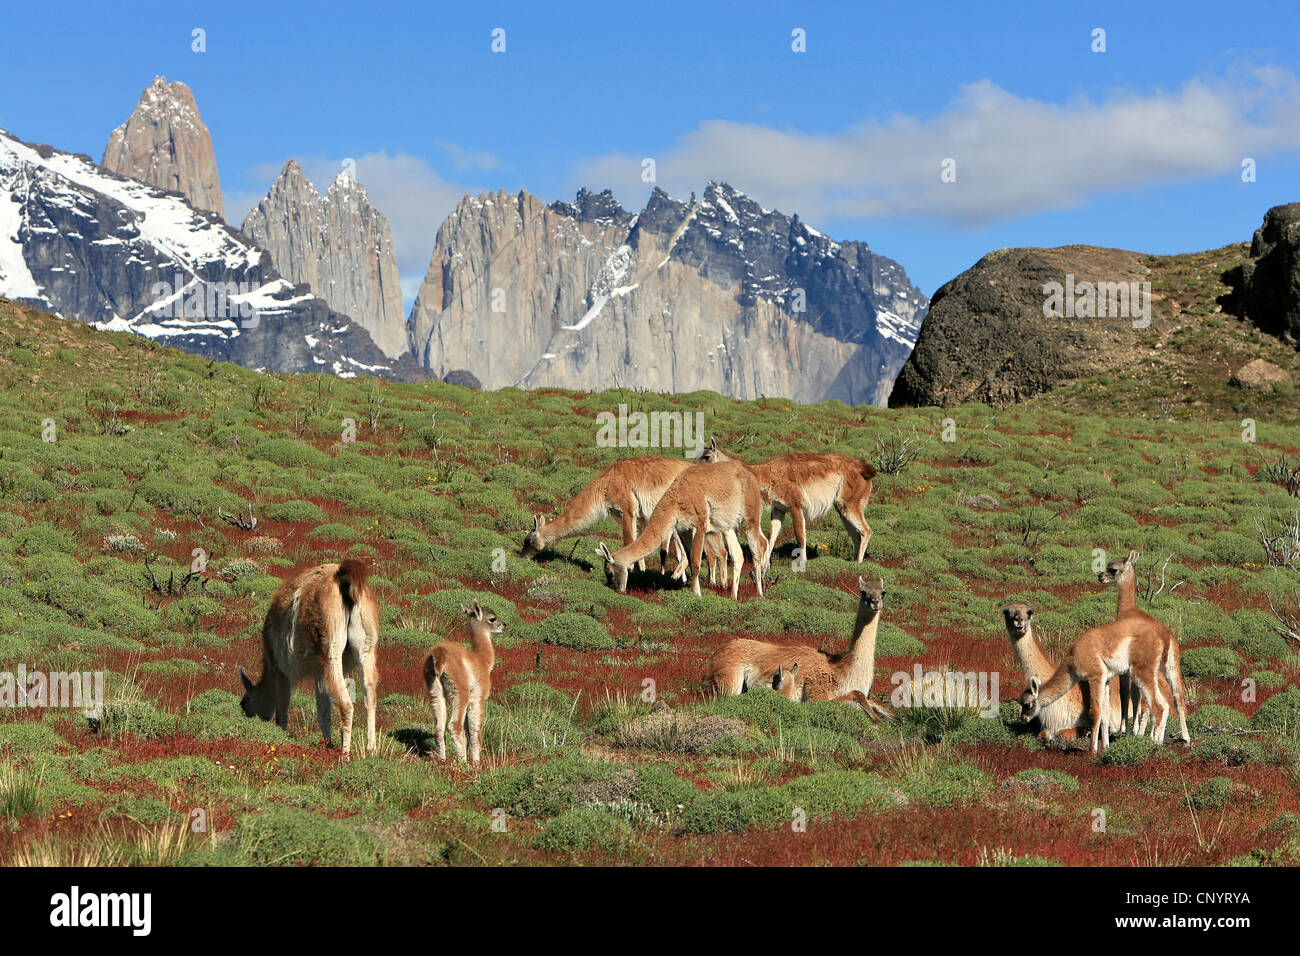 guanaco (Lama guanicoe), grazing herd, Torres del Paine in background, Chile, Torres del Paine National Park - Stock Image